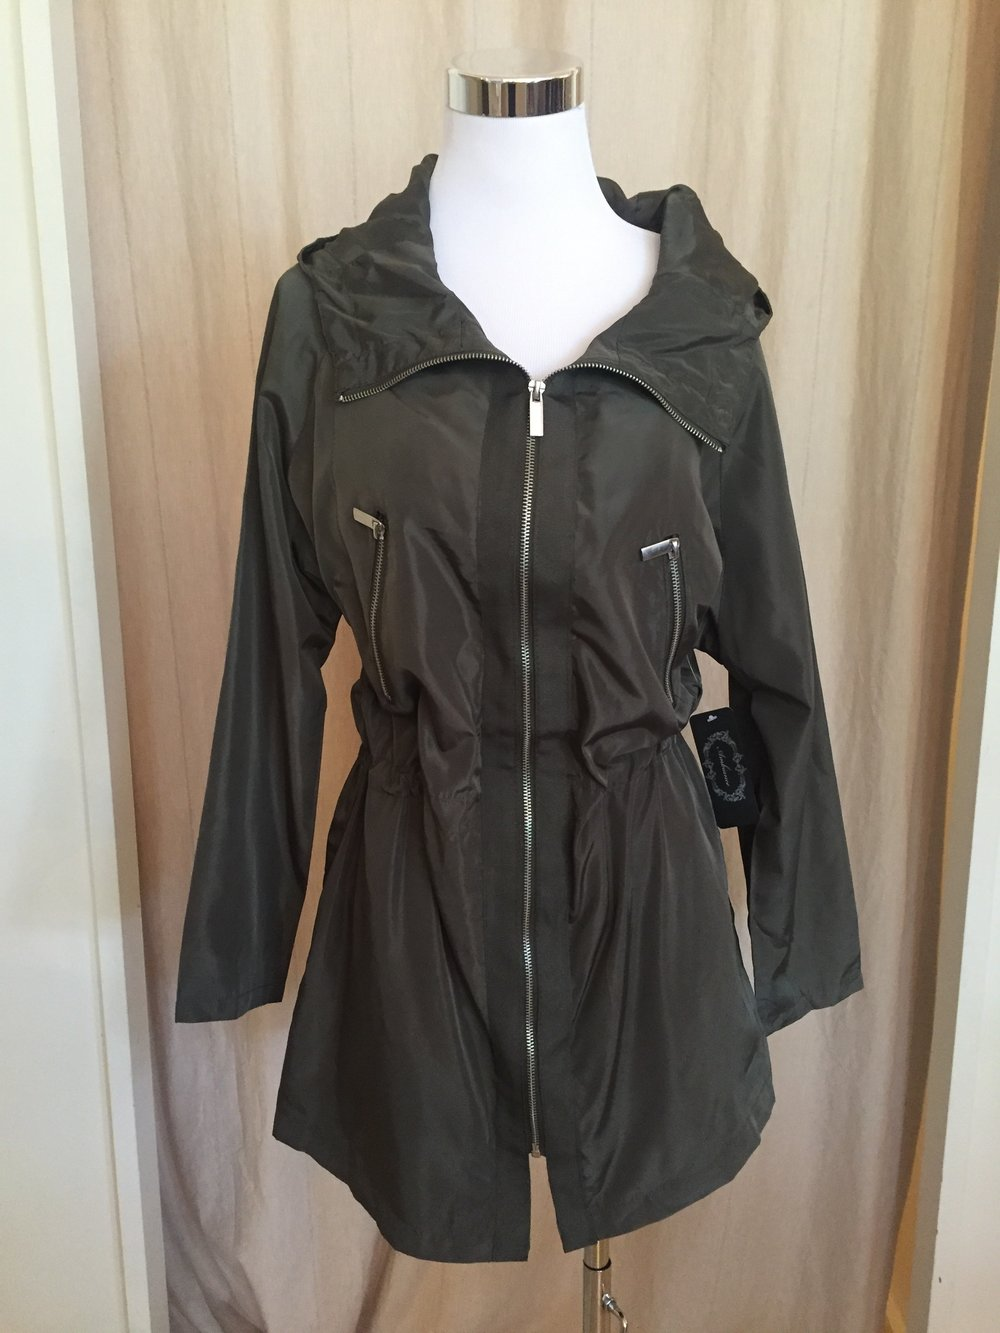 Olive Rain Coat (also in black!), $45